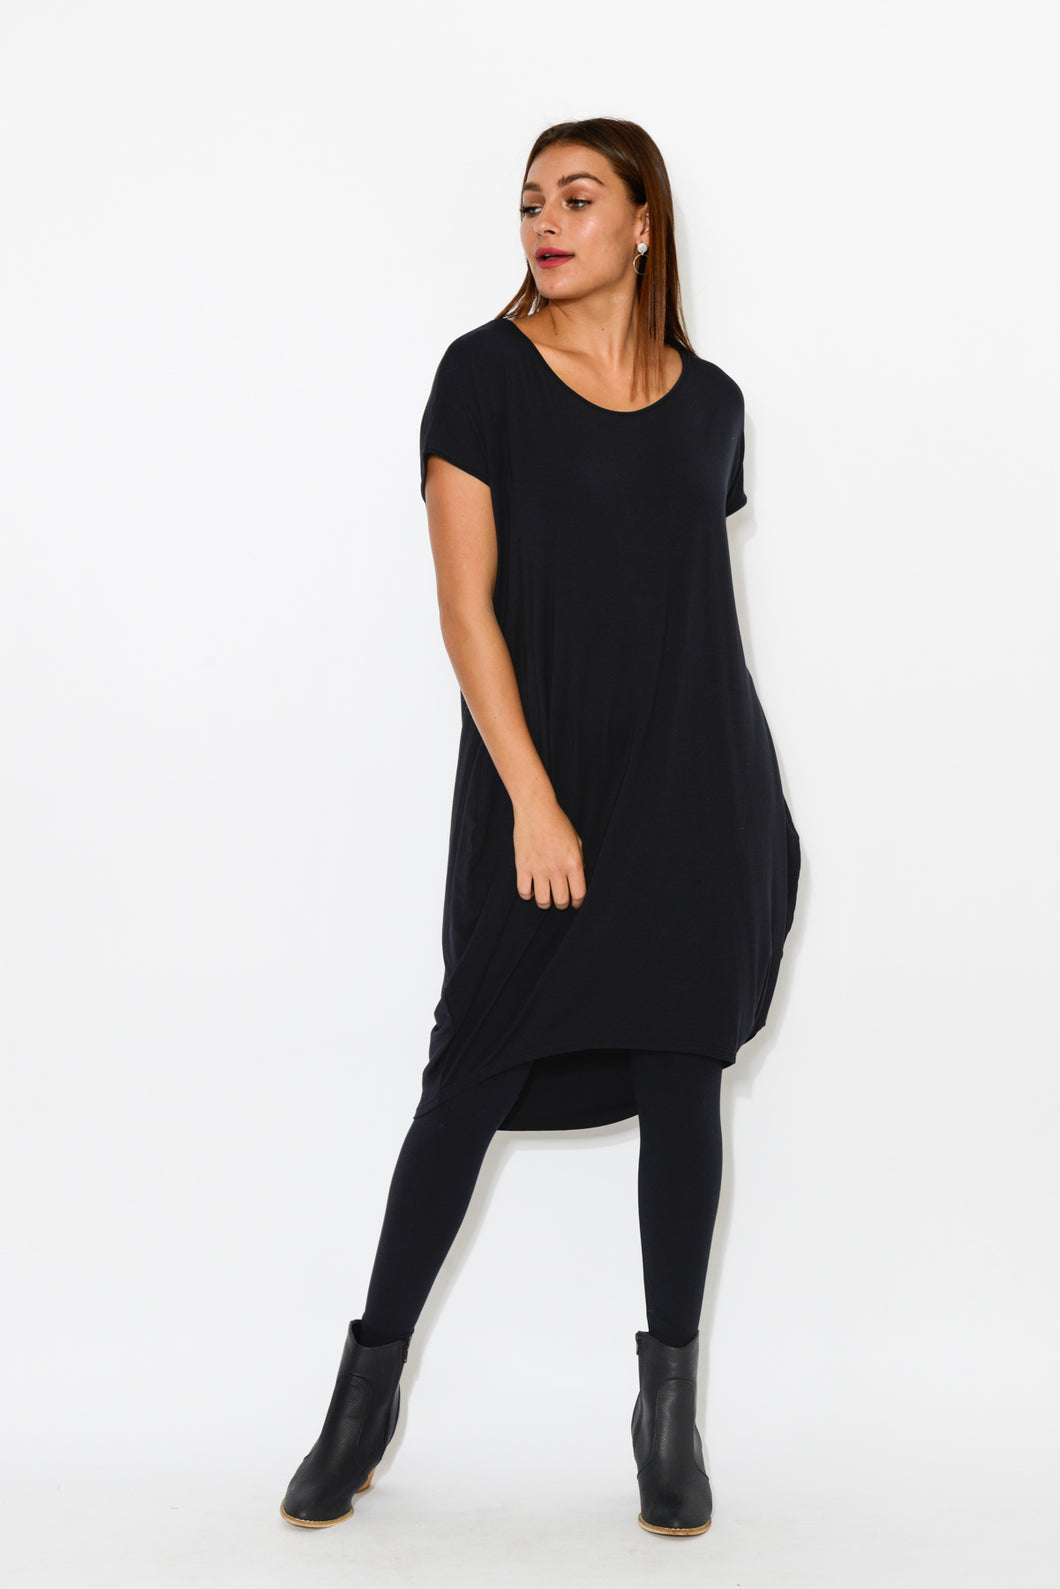 Tulip Black Modal Drape Dress - Blue Bungalow